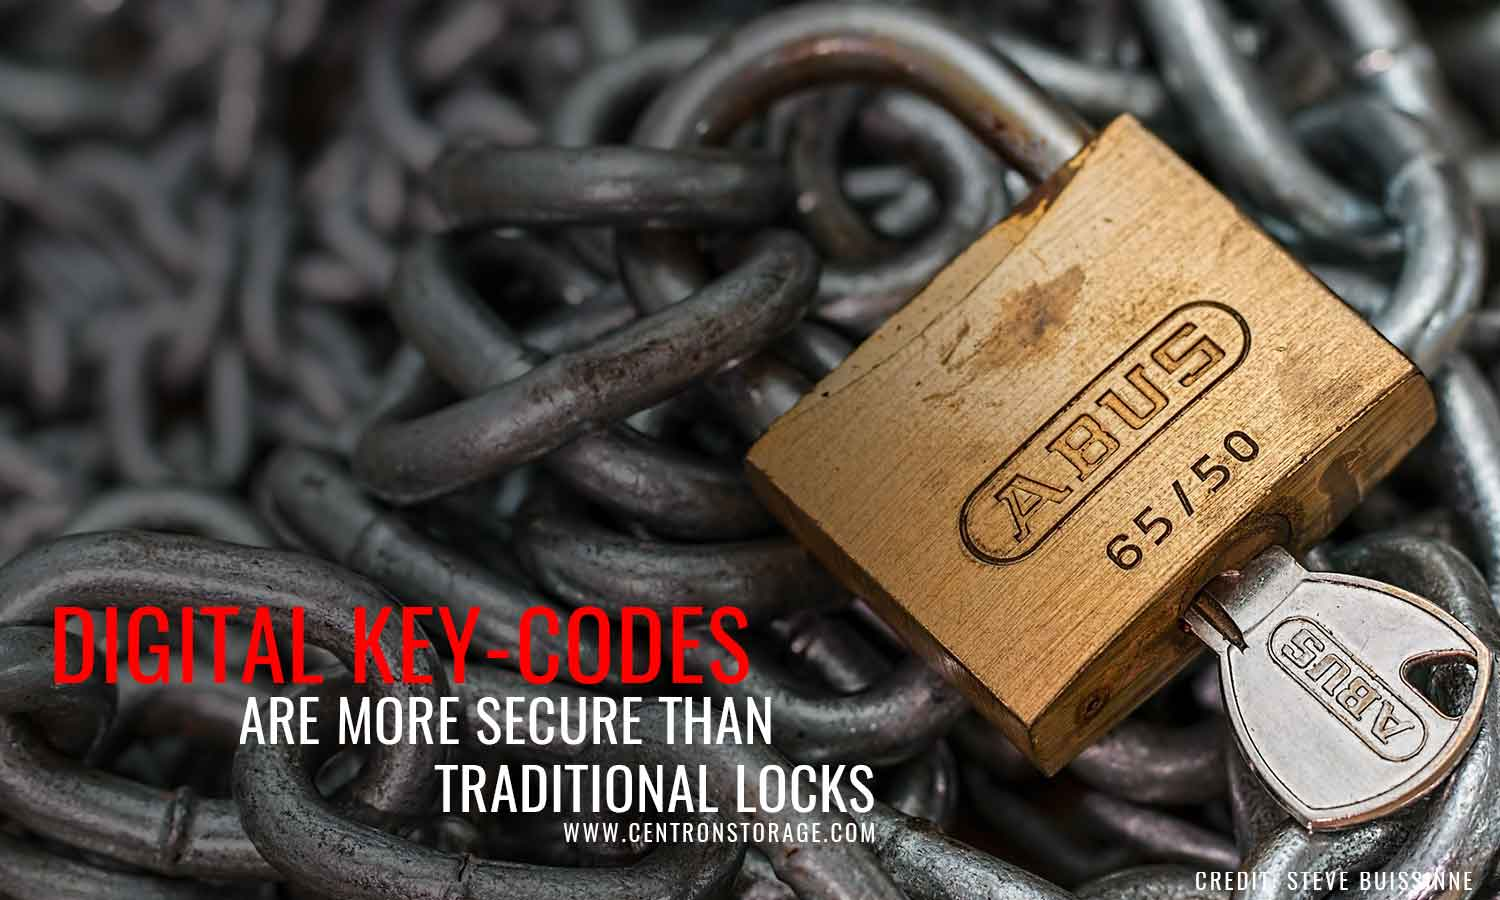 Digital key-codes are more secure than traditional locks